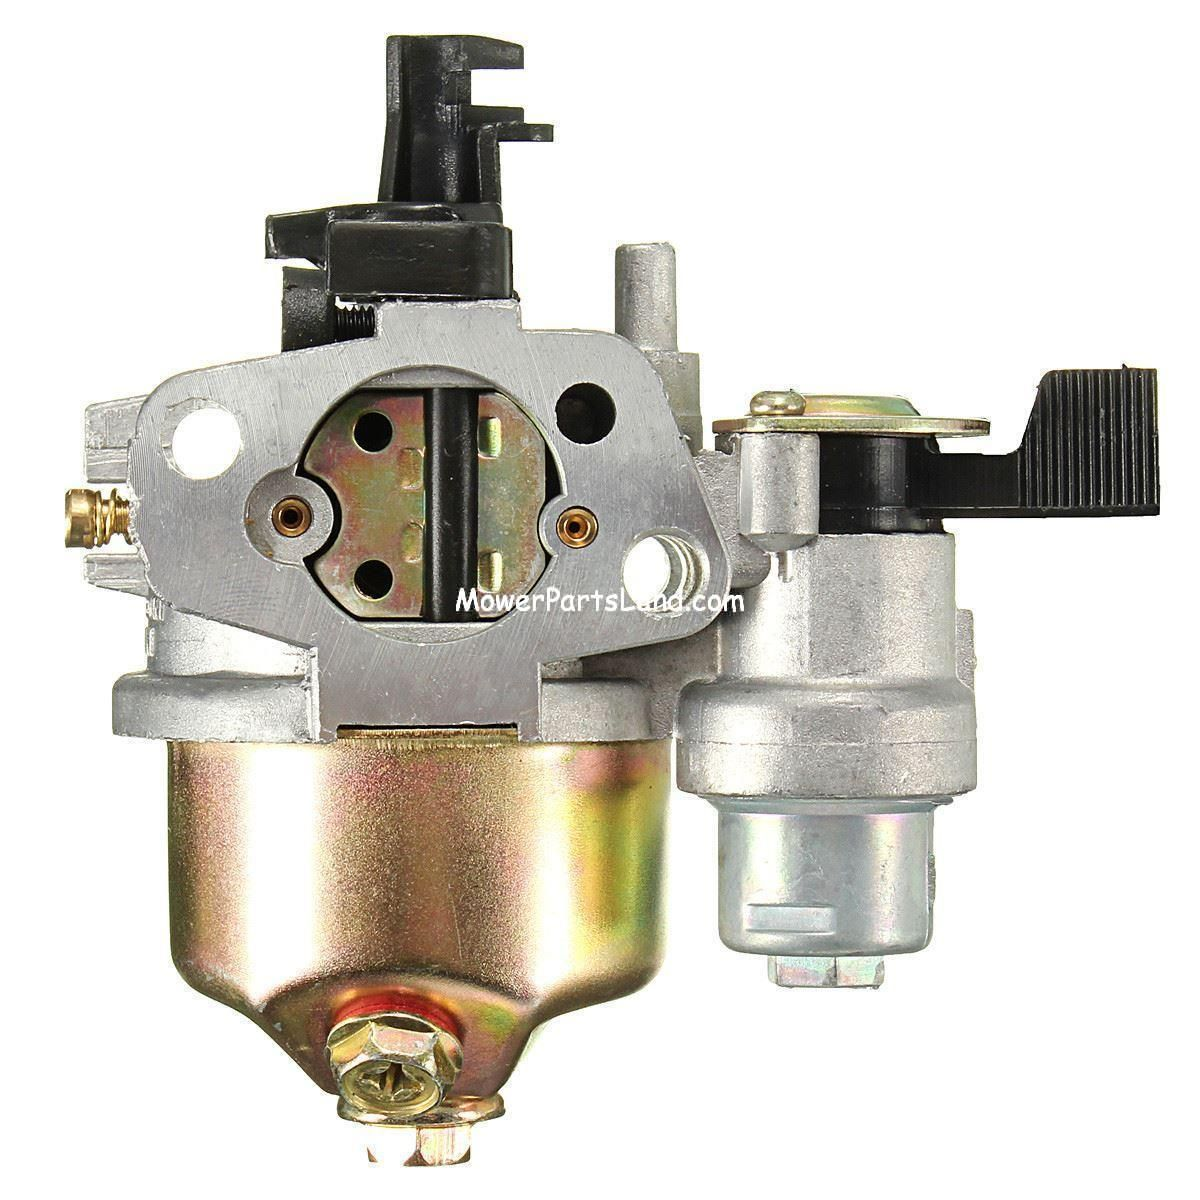 Carburetor For Predator Harbor Freight 212cc Engine | Mower